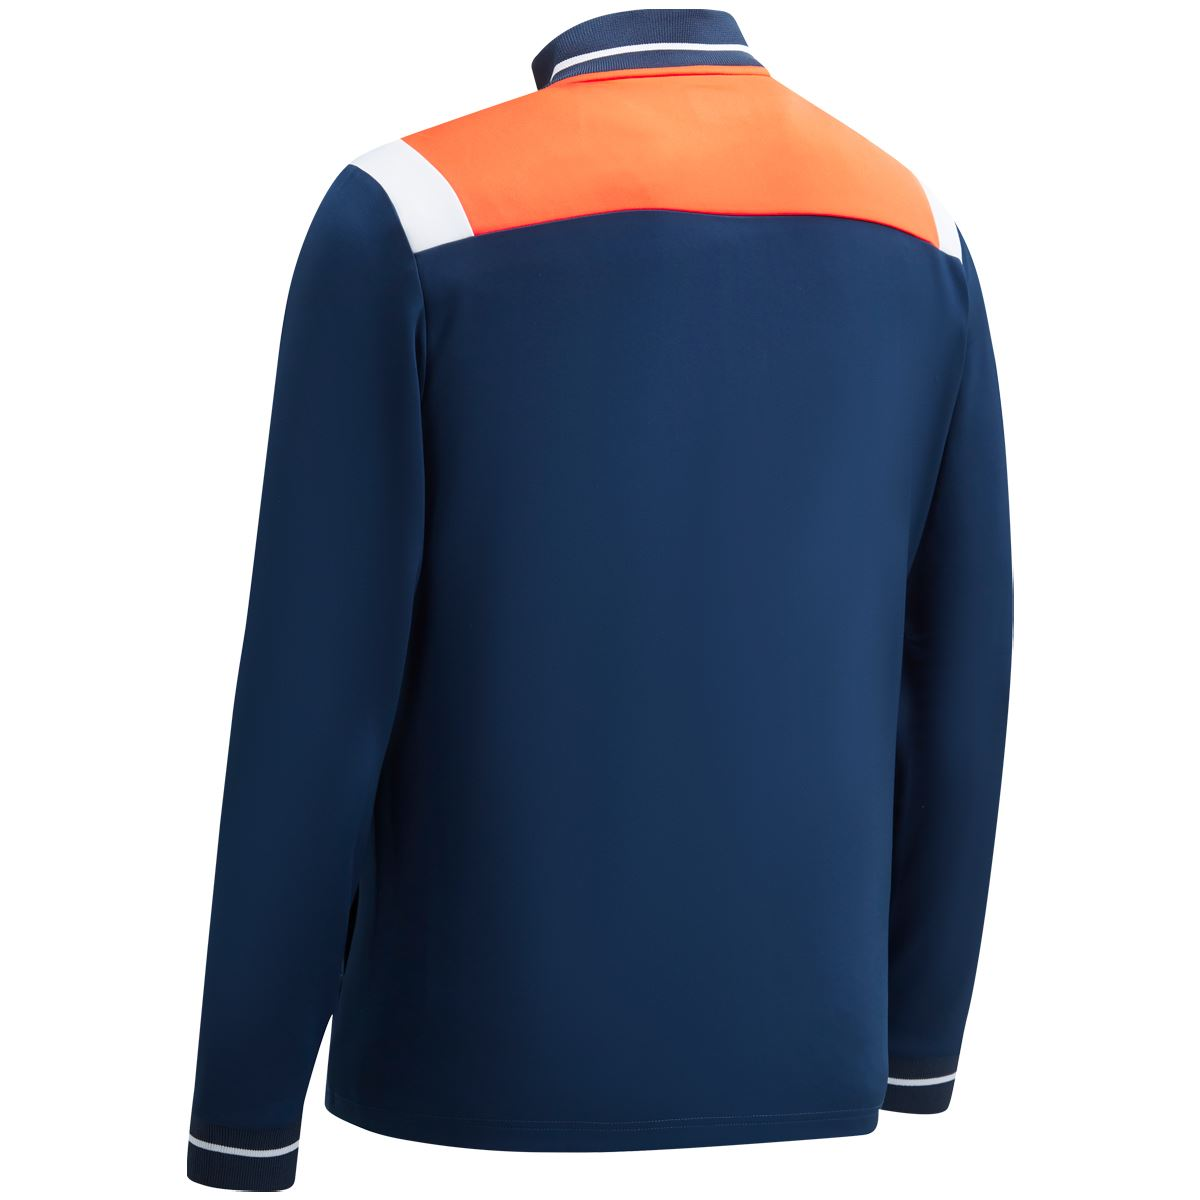 Callaway-Golf-2019-Mens-Colourblock-Track-FZ-Contrast-Opti-Dri-Golf-Jacket thumbnail 5